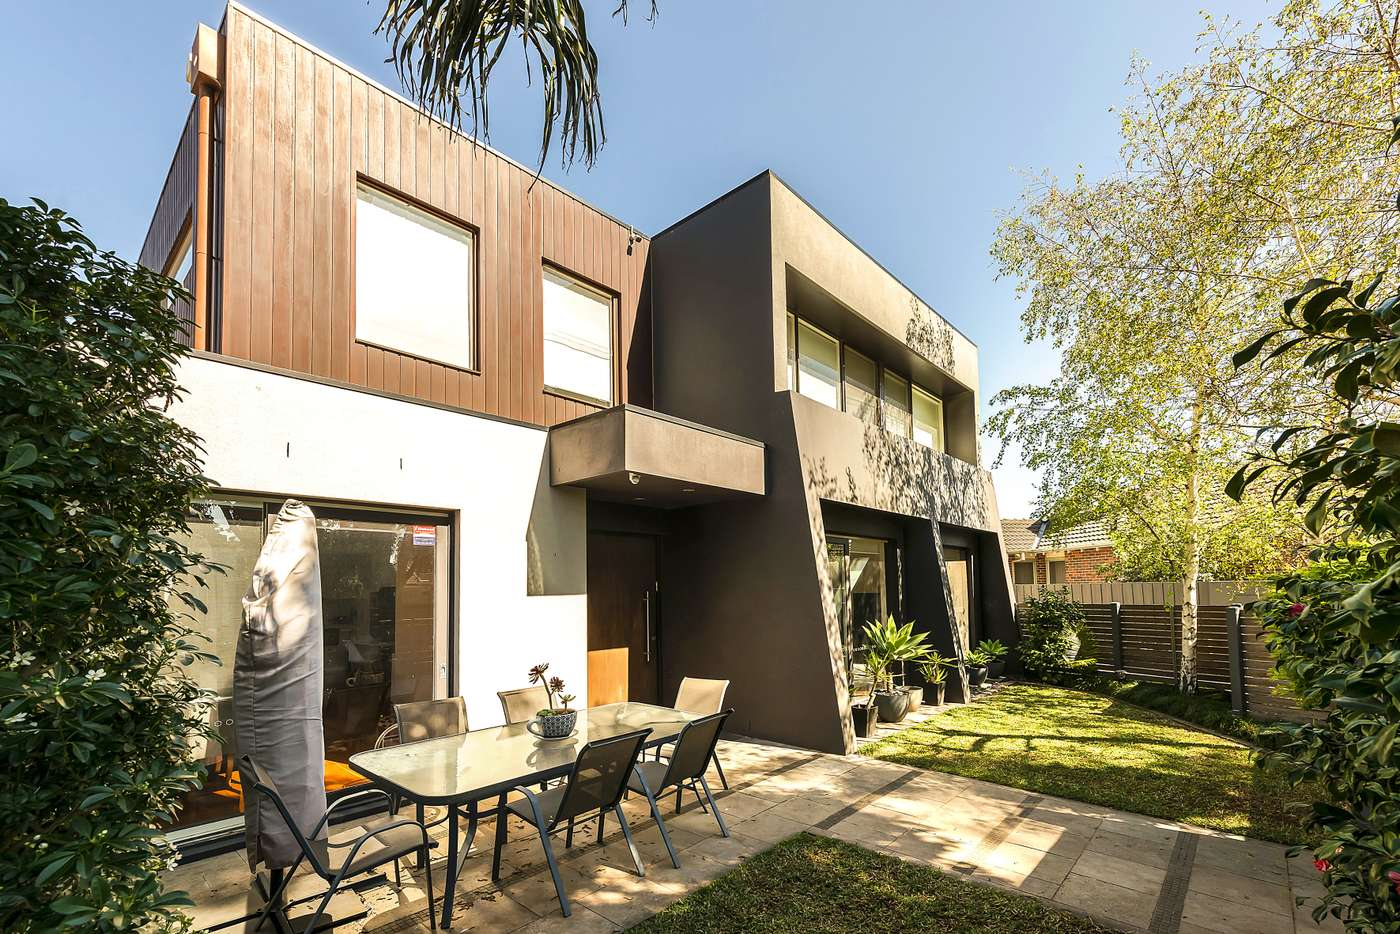 Main view of Homely house listing, 3 Wilgra Cres, Caulfield VIC 3162